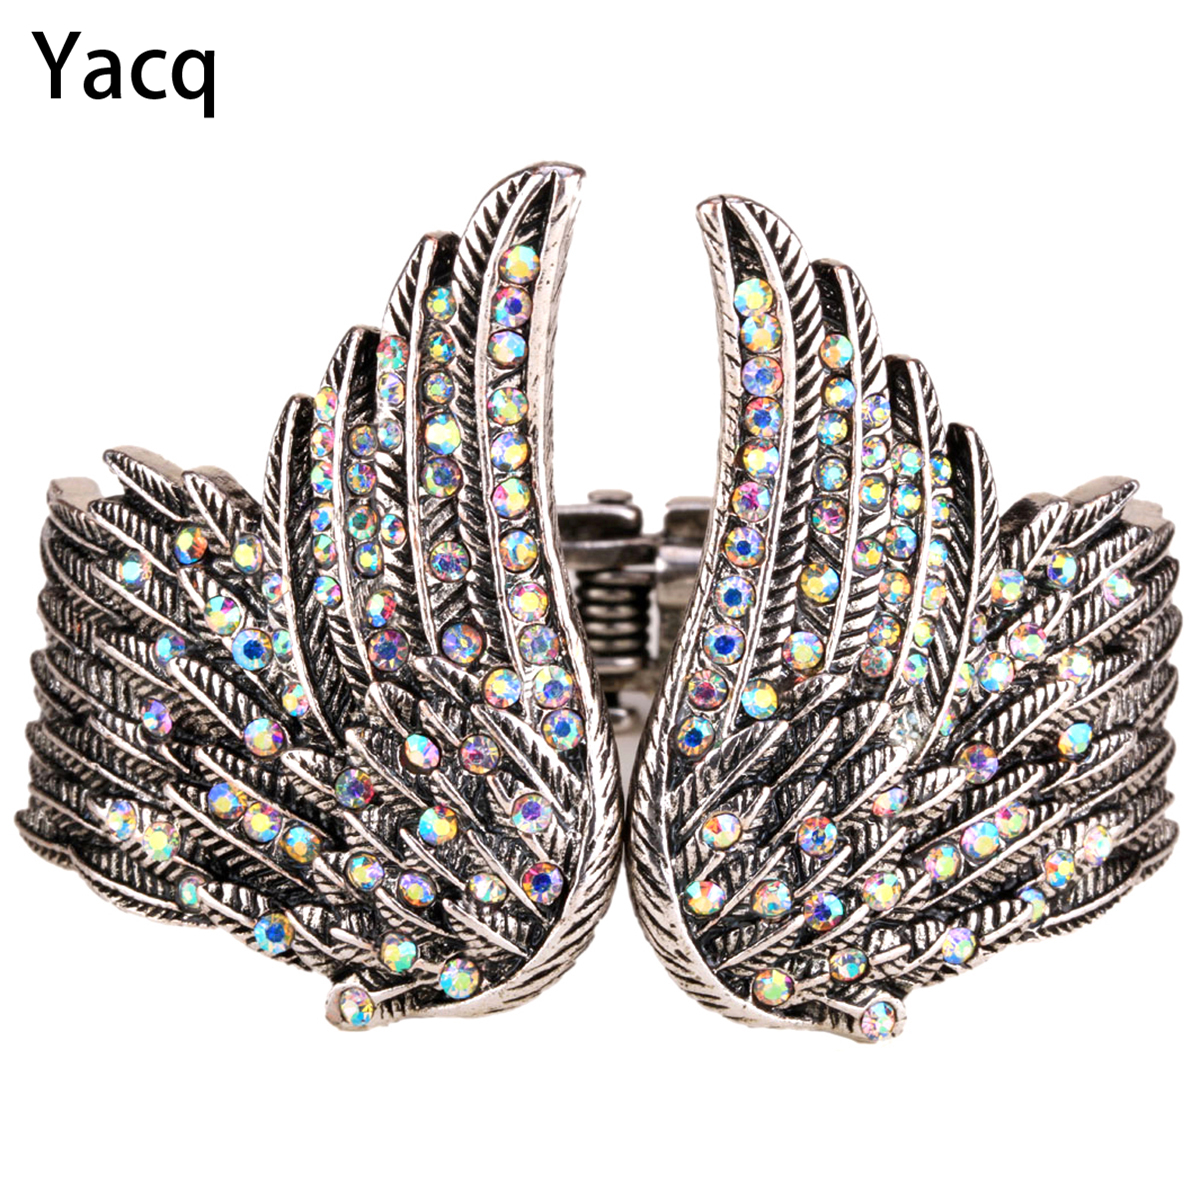 YACQ Angel Wing Bangle Armband Damer Biker Crystal Fashion Smycken Antik Guld Silver Färggåvor Hennes mamma Dropshipping D01